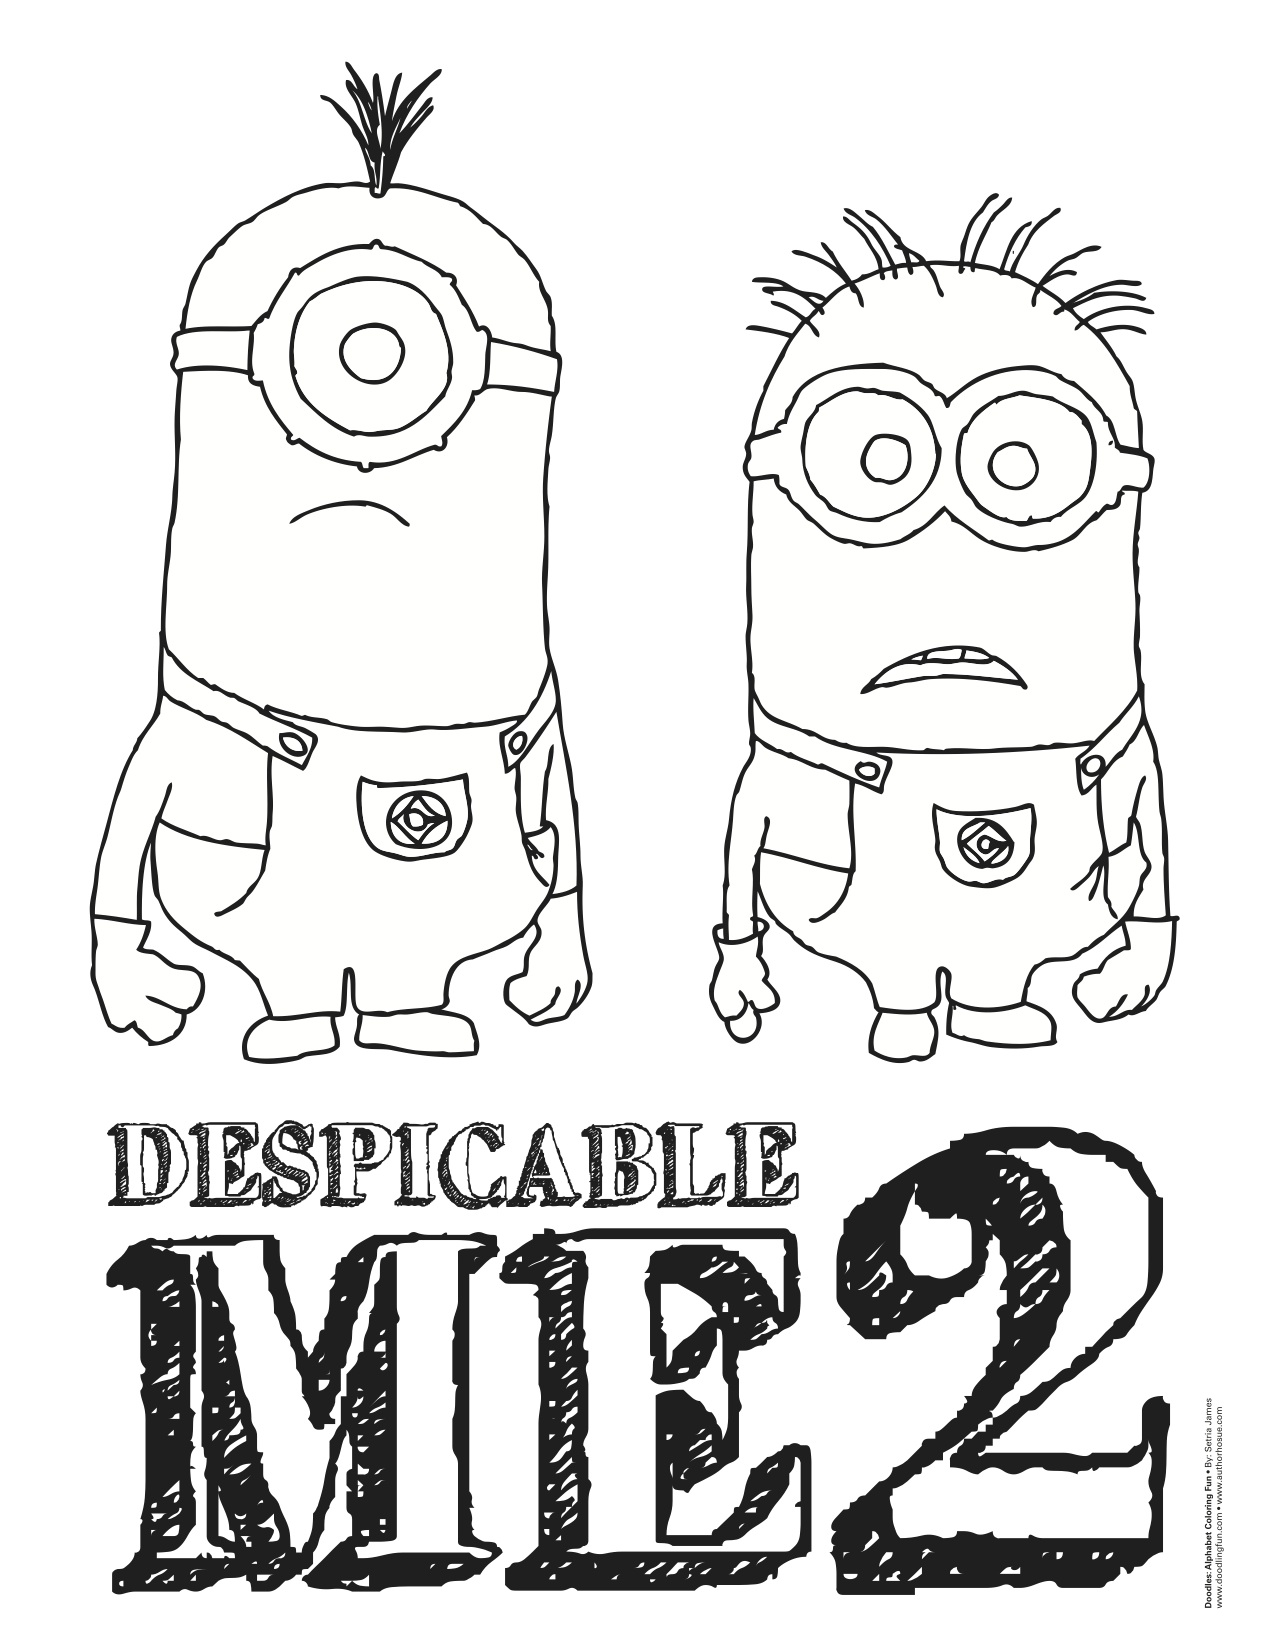 despicable me two coloring pages - photo#27